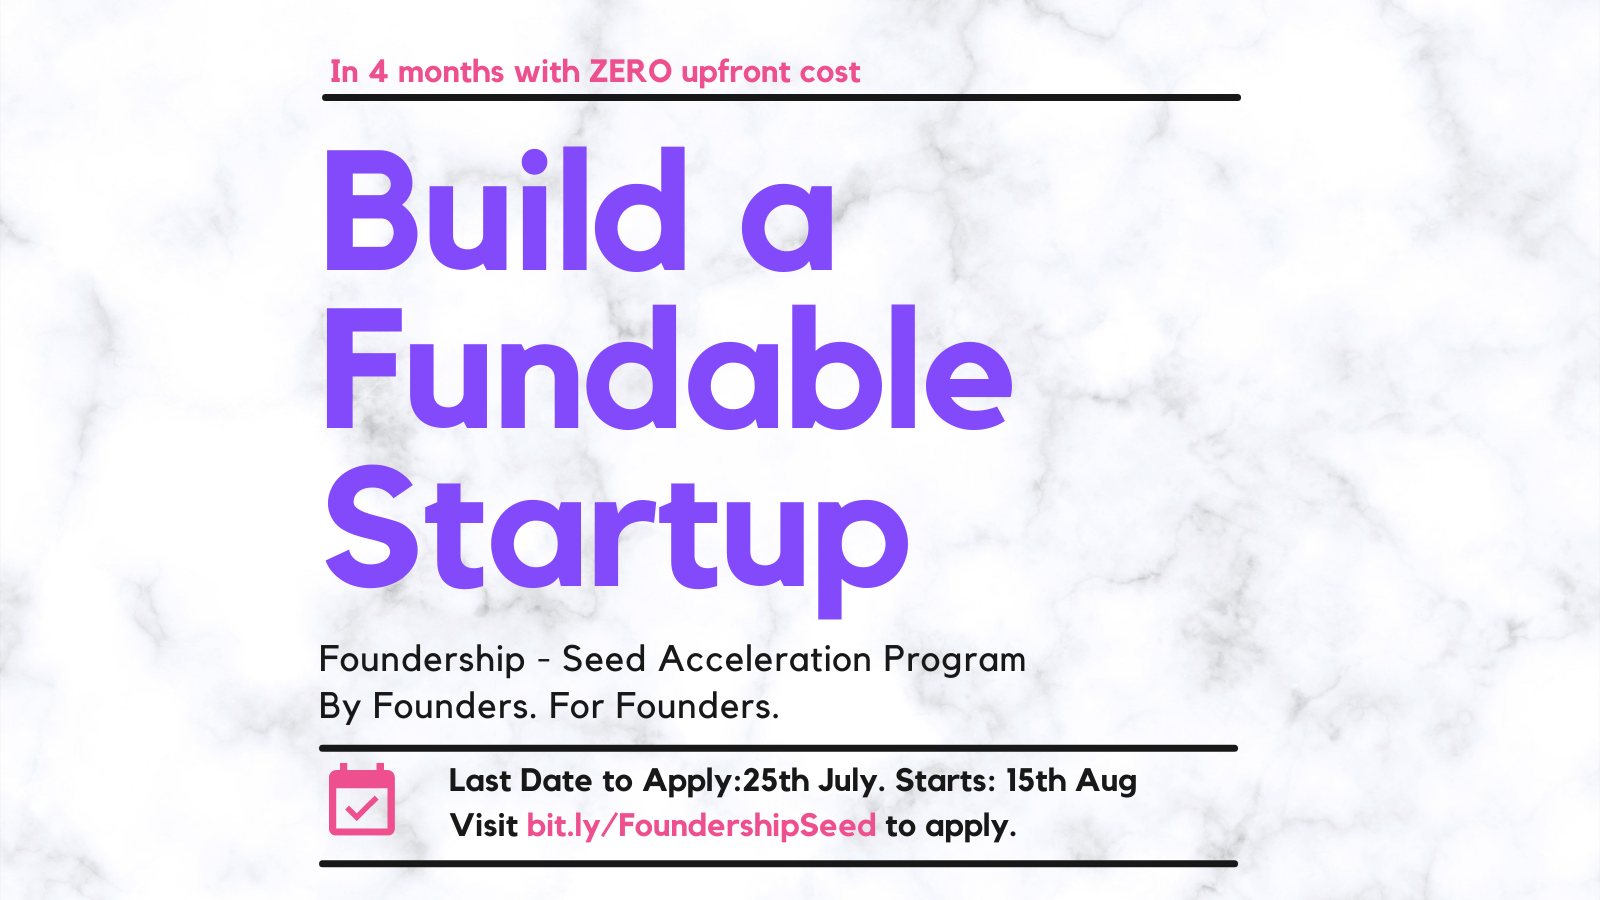 Announcing Foundership - Seed Acceleration Program. Build a fundable startup in 4 months with ZERO upfront cost!